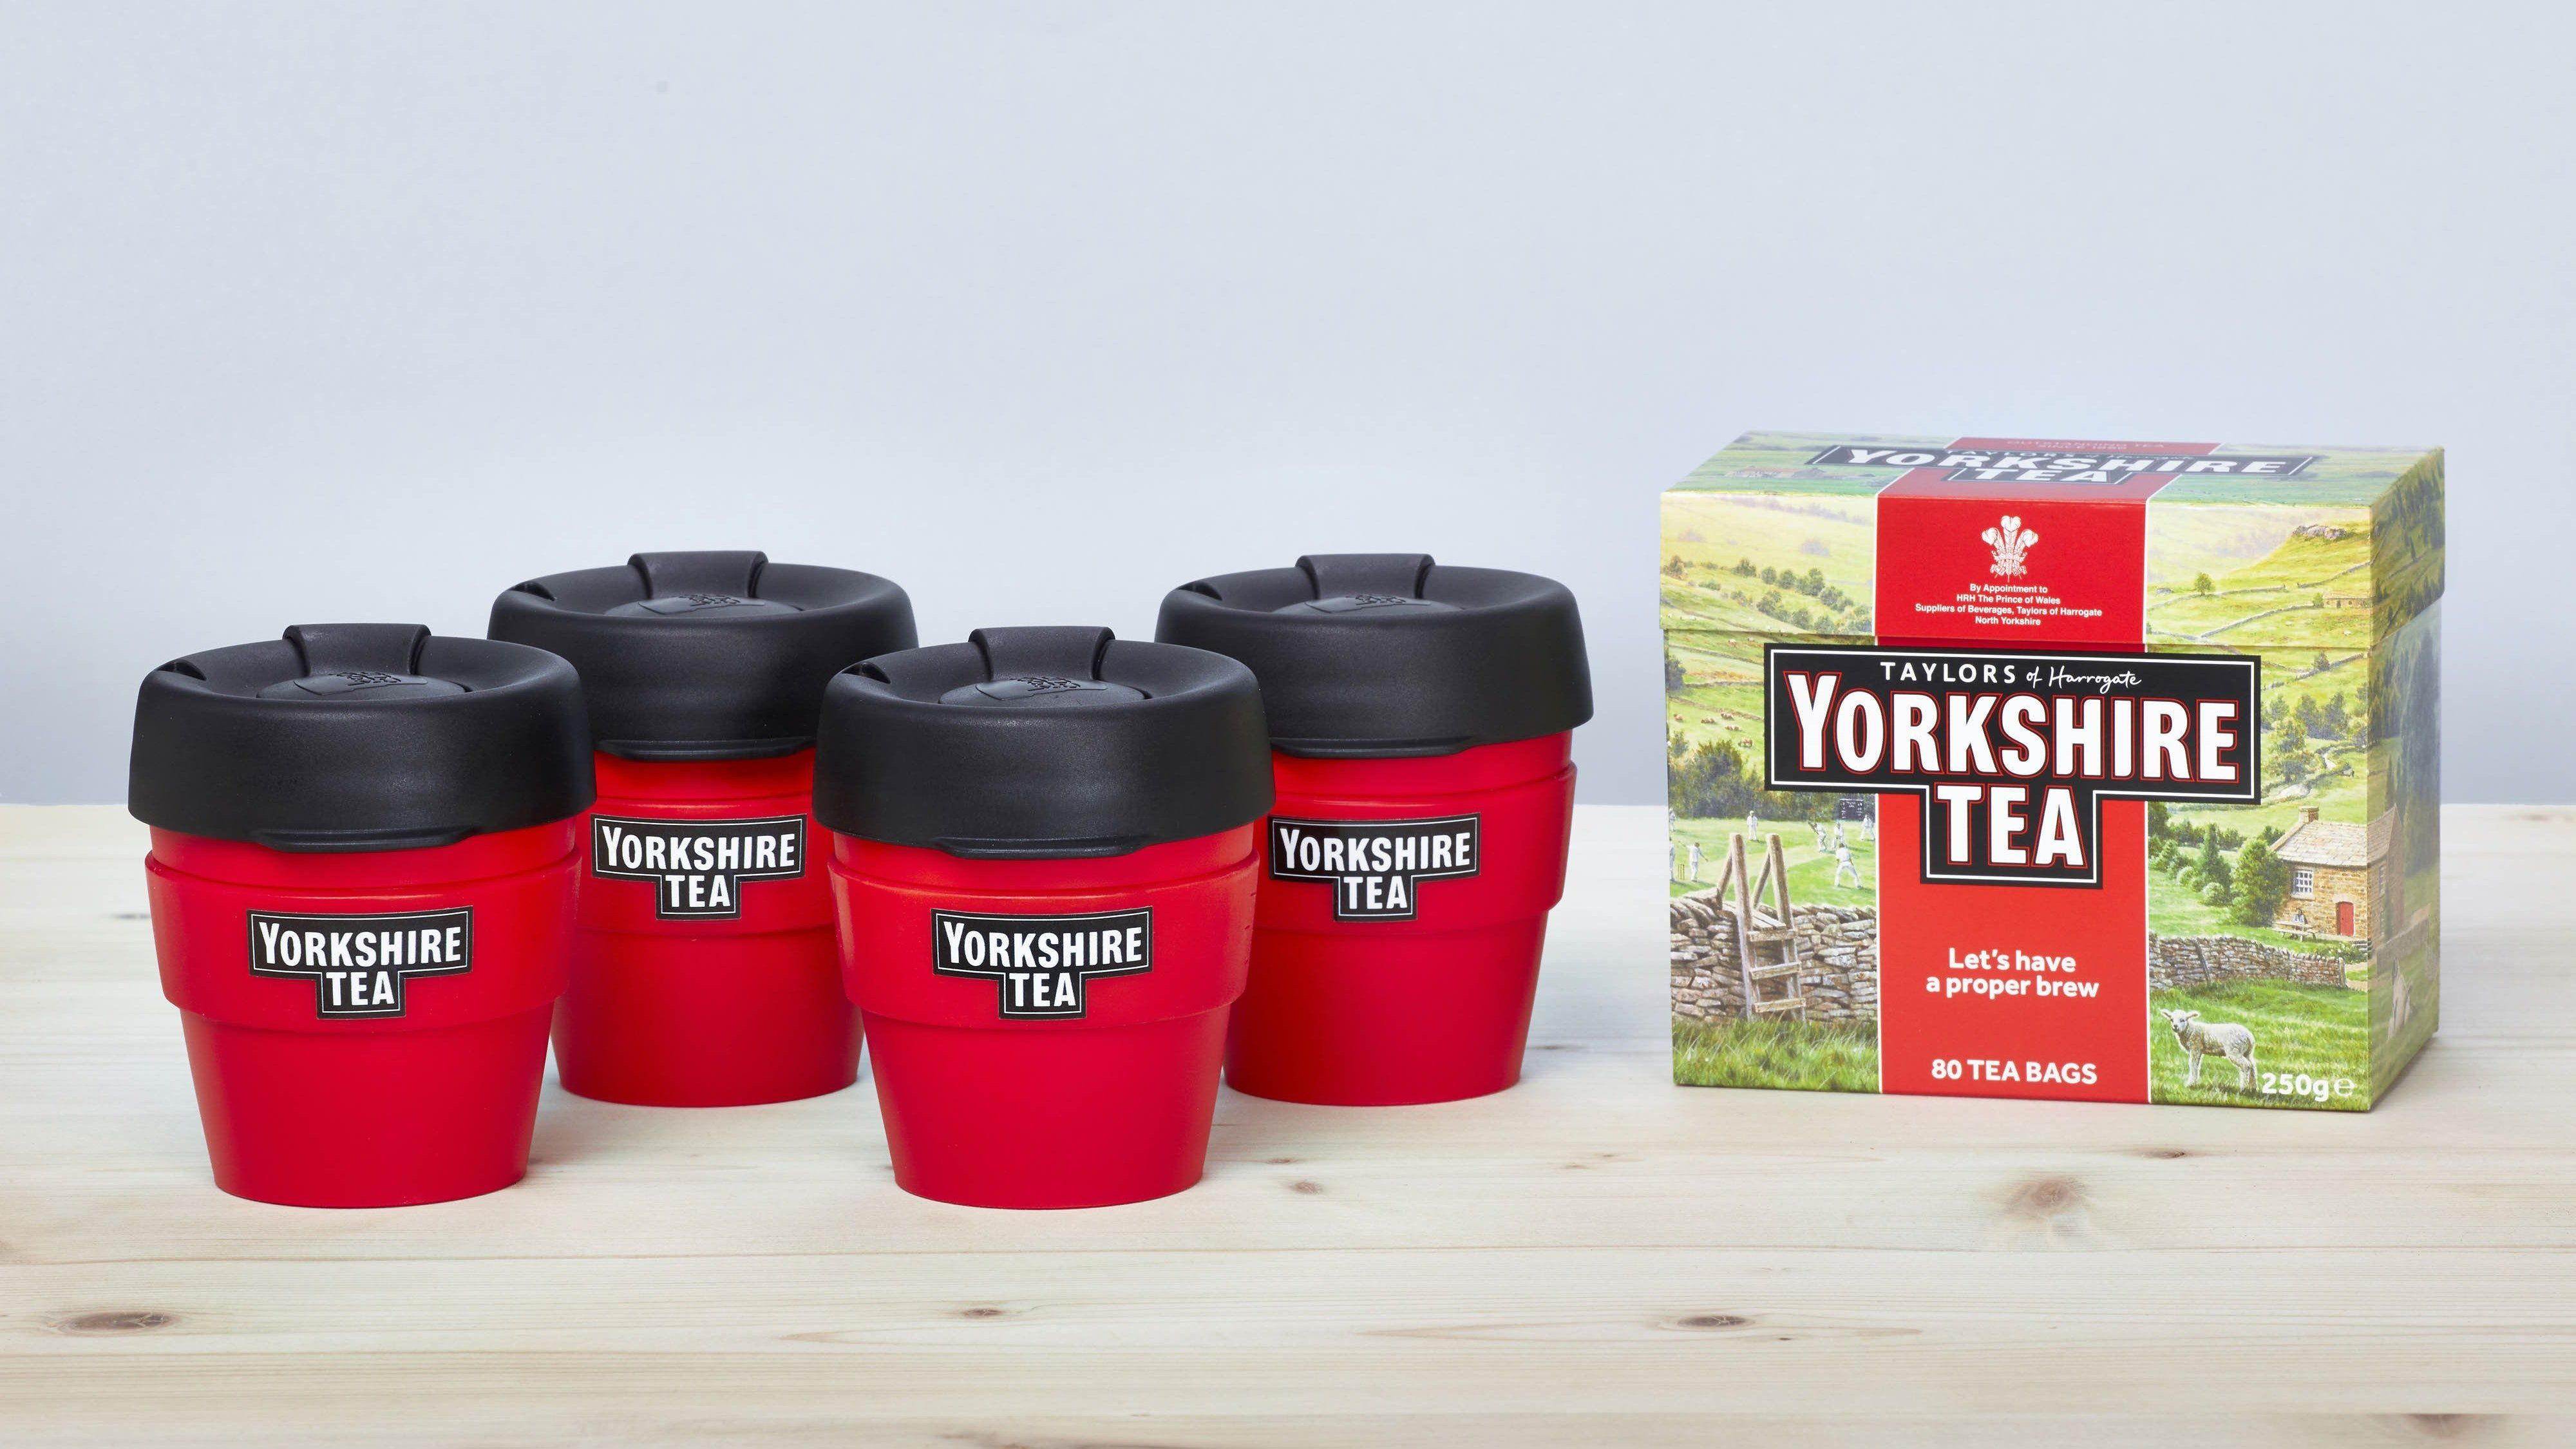 CAUSING A STIR: Yorkshire Tea's Biodegradable Teabags Are Falling Apart (And So Are